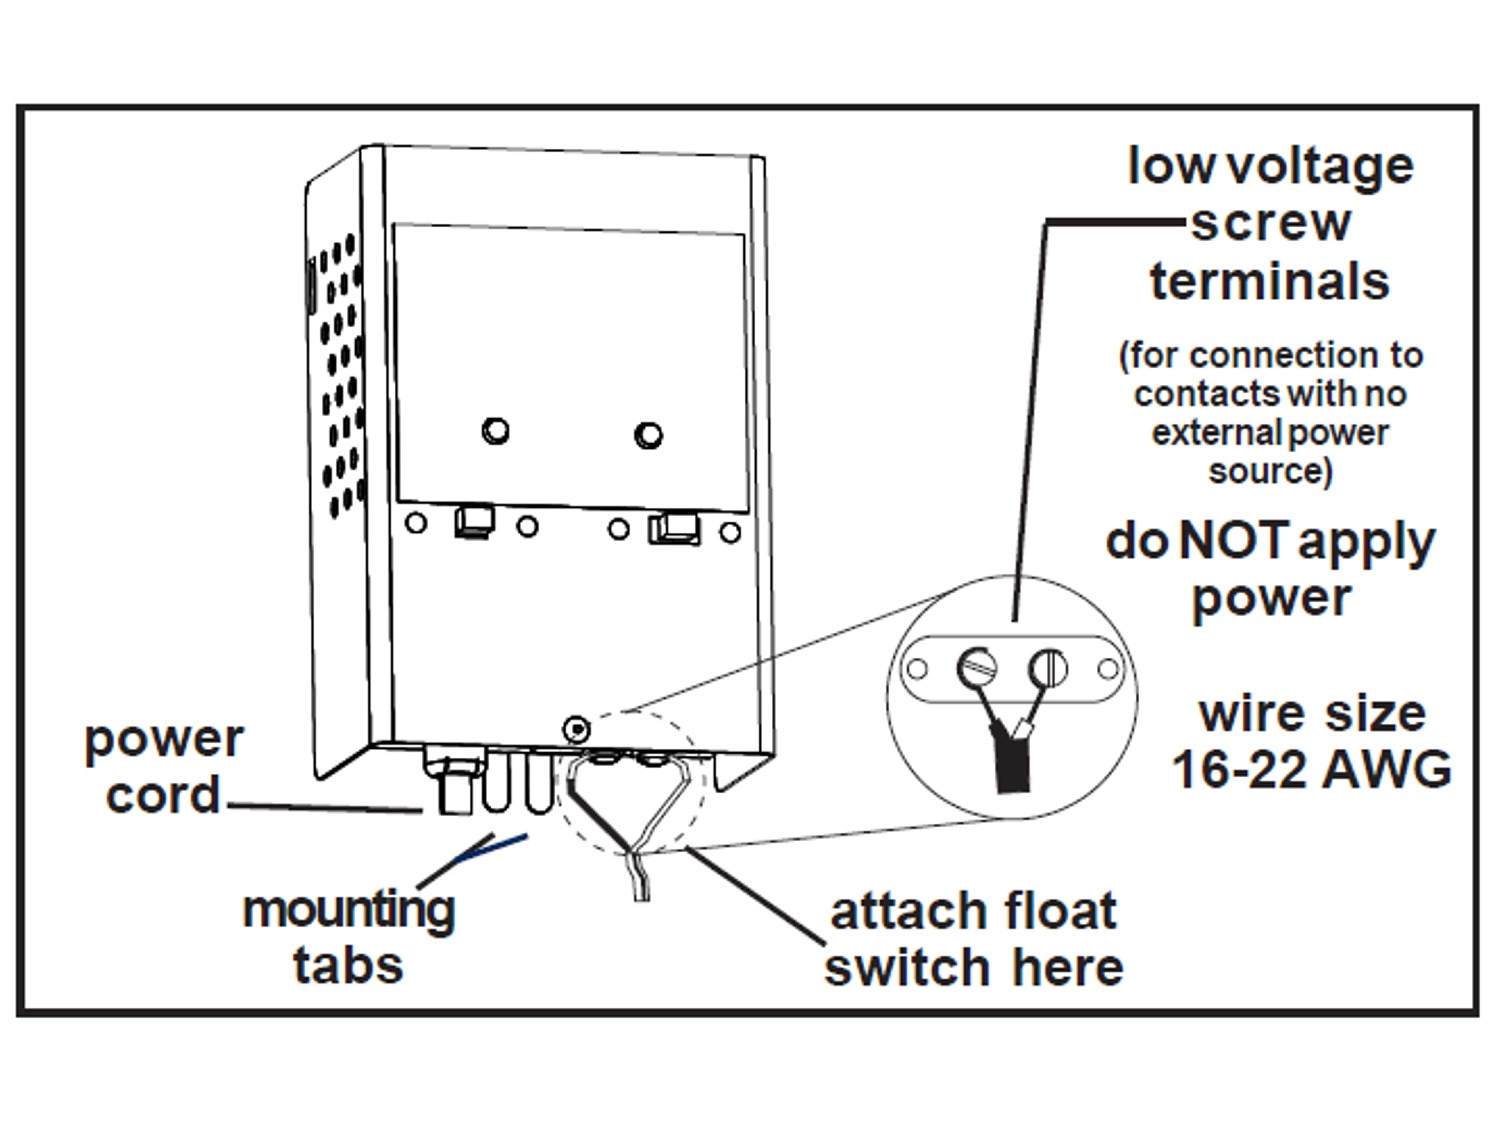 Septic Tank Wiring Diagram For Alarm - Trusted Wiring Diagram - Septic Tank Float Switch Wiring Diagram